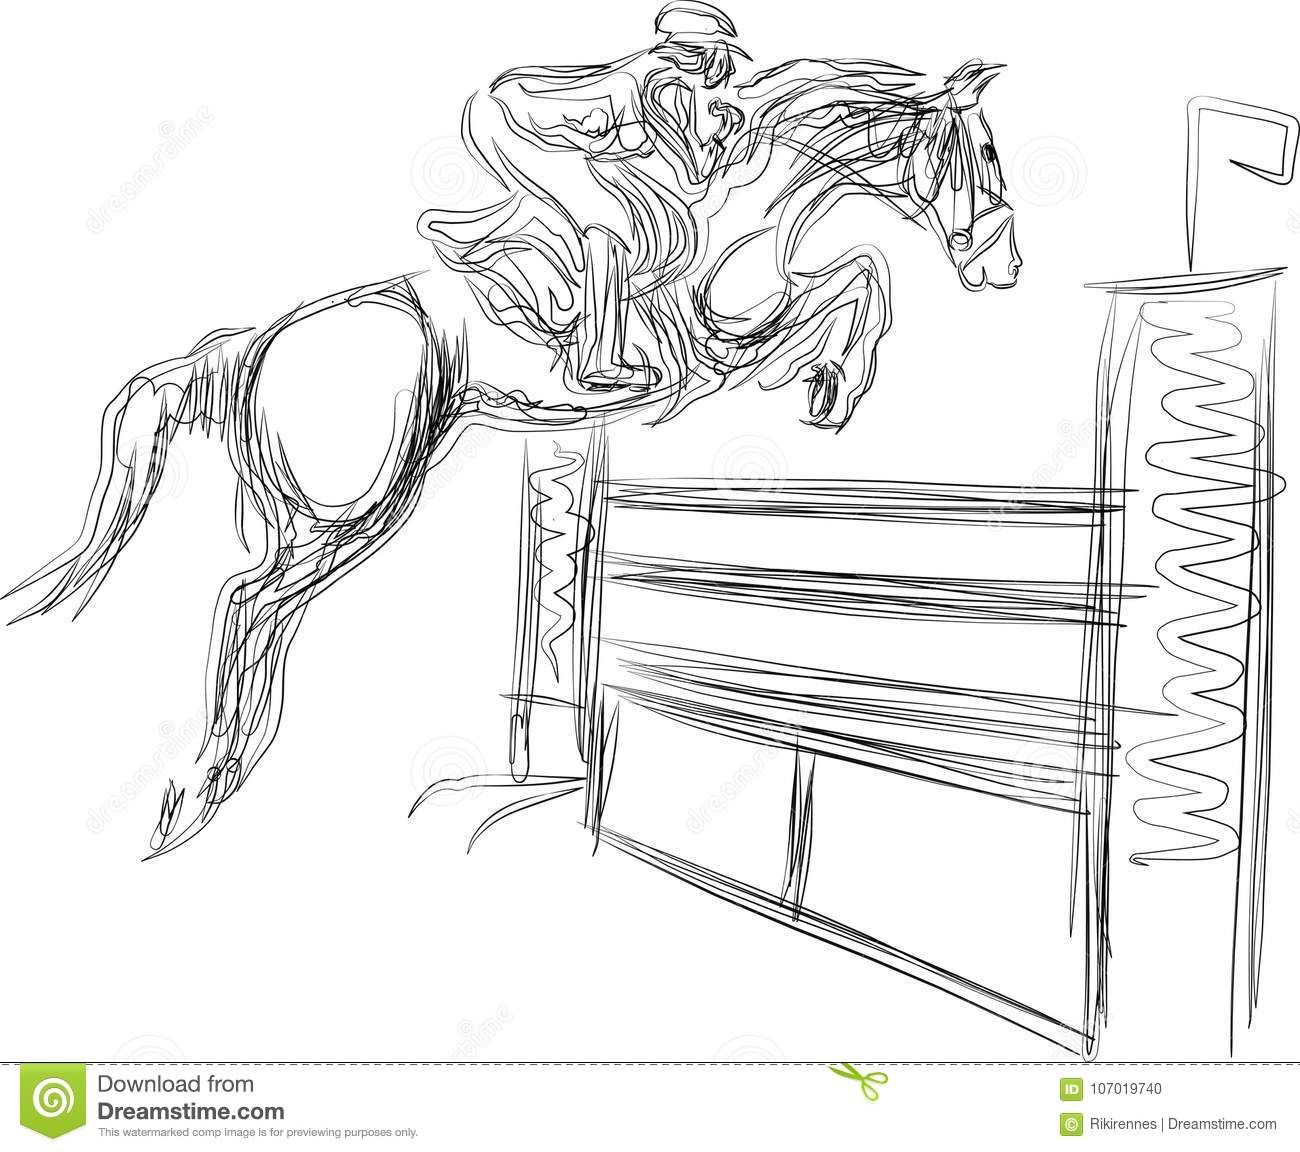 Young Rider Performing Jump On Bay Horse Over A Hurdle On Show Jumping Stock Illustration Illustration Of Event Fence 107019740